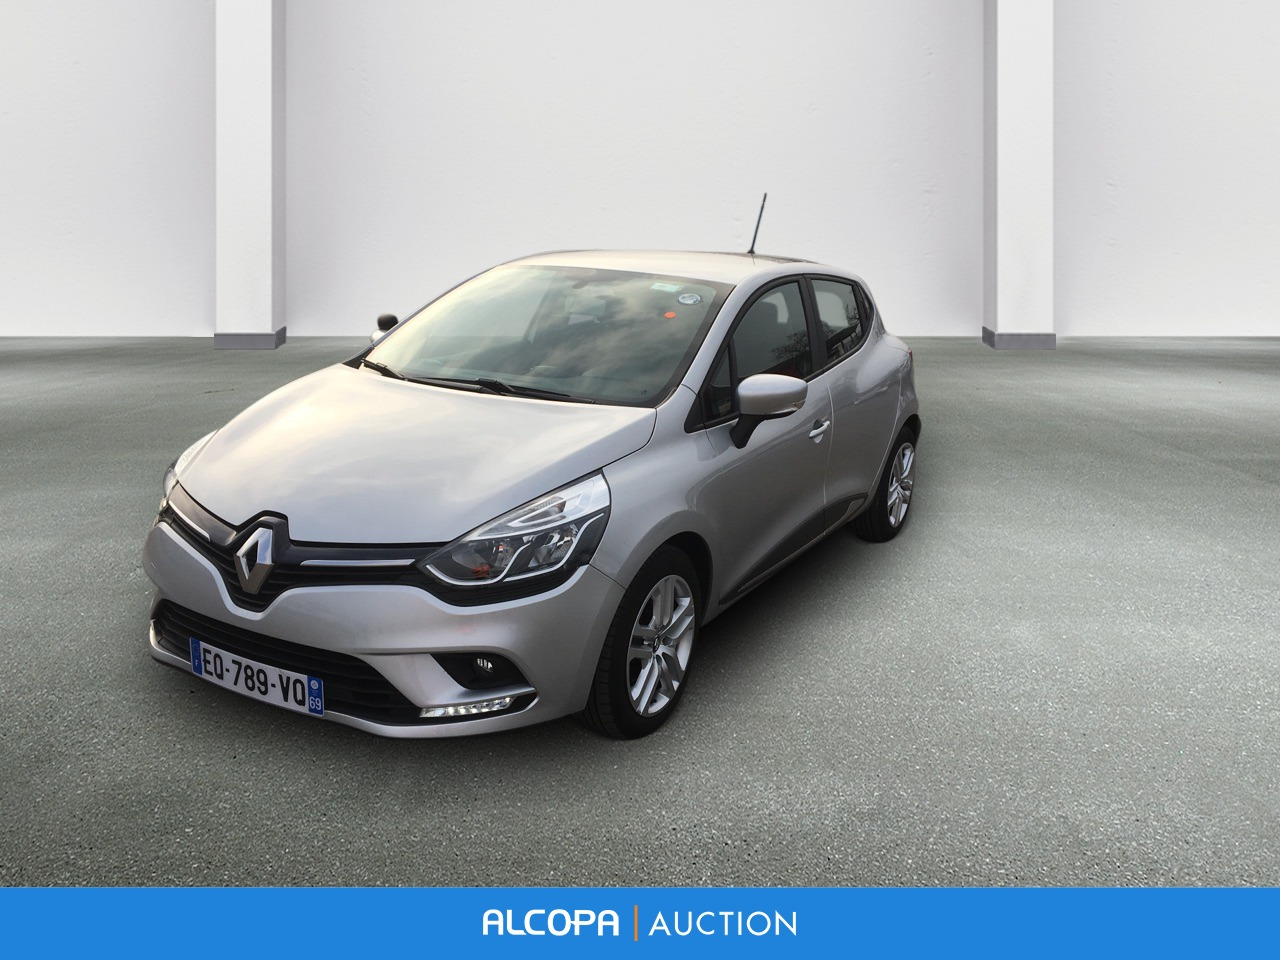 renault clio iv clio dci 75 energy ex auto ecole alcopa auction. Black Bedroom Furniture Sets. Home Design Ideas